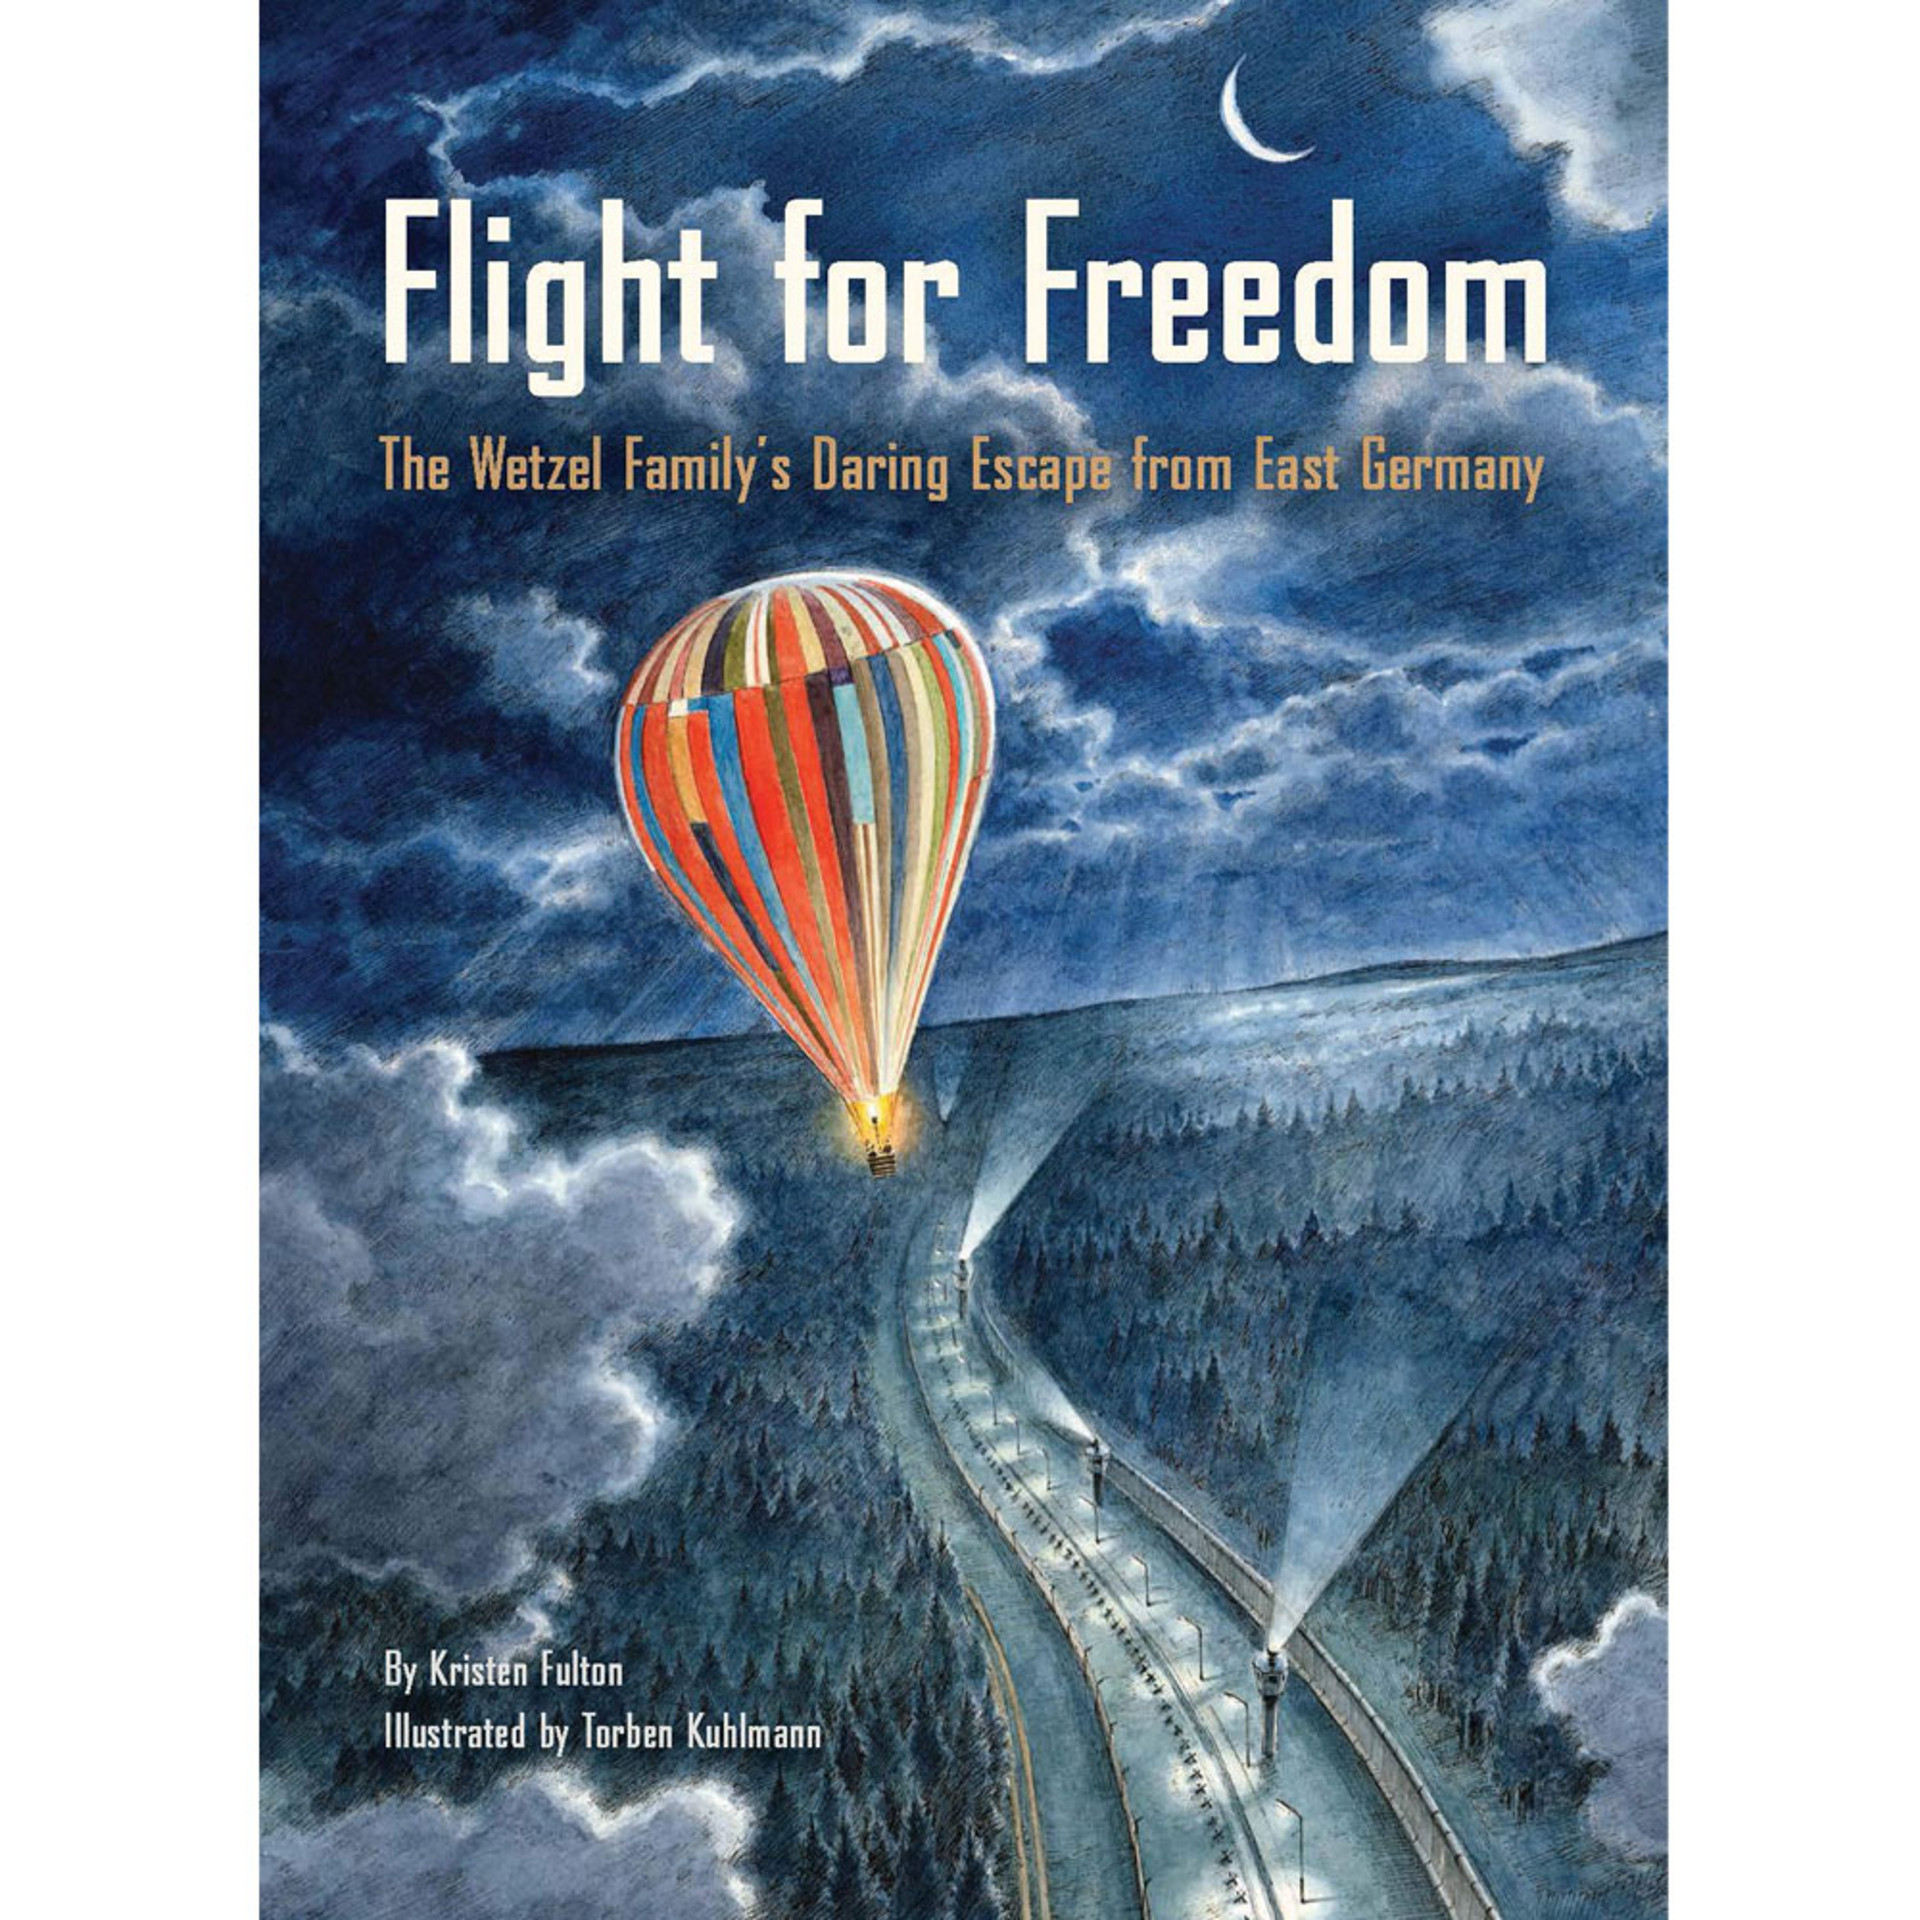 Flight for Freedom: The Wetzel Family's Daring Escape from East Germany by Kristen Fulton and Torben Kuhlmann